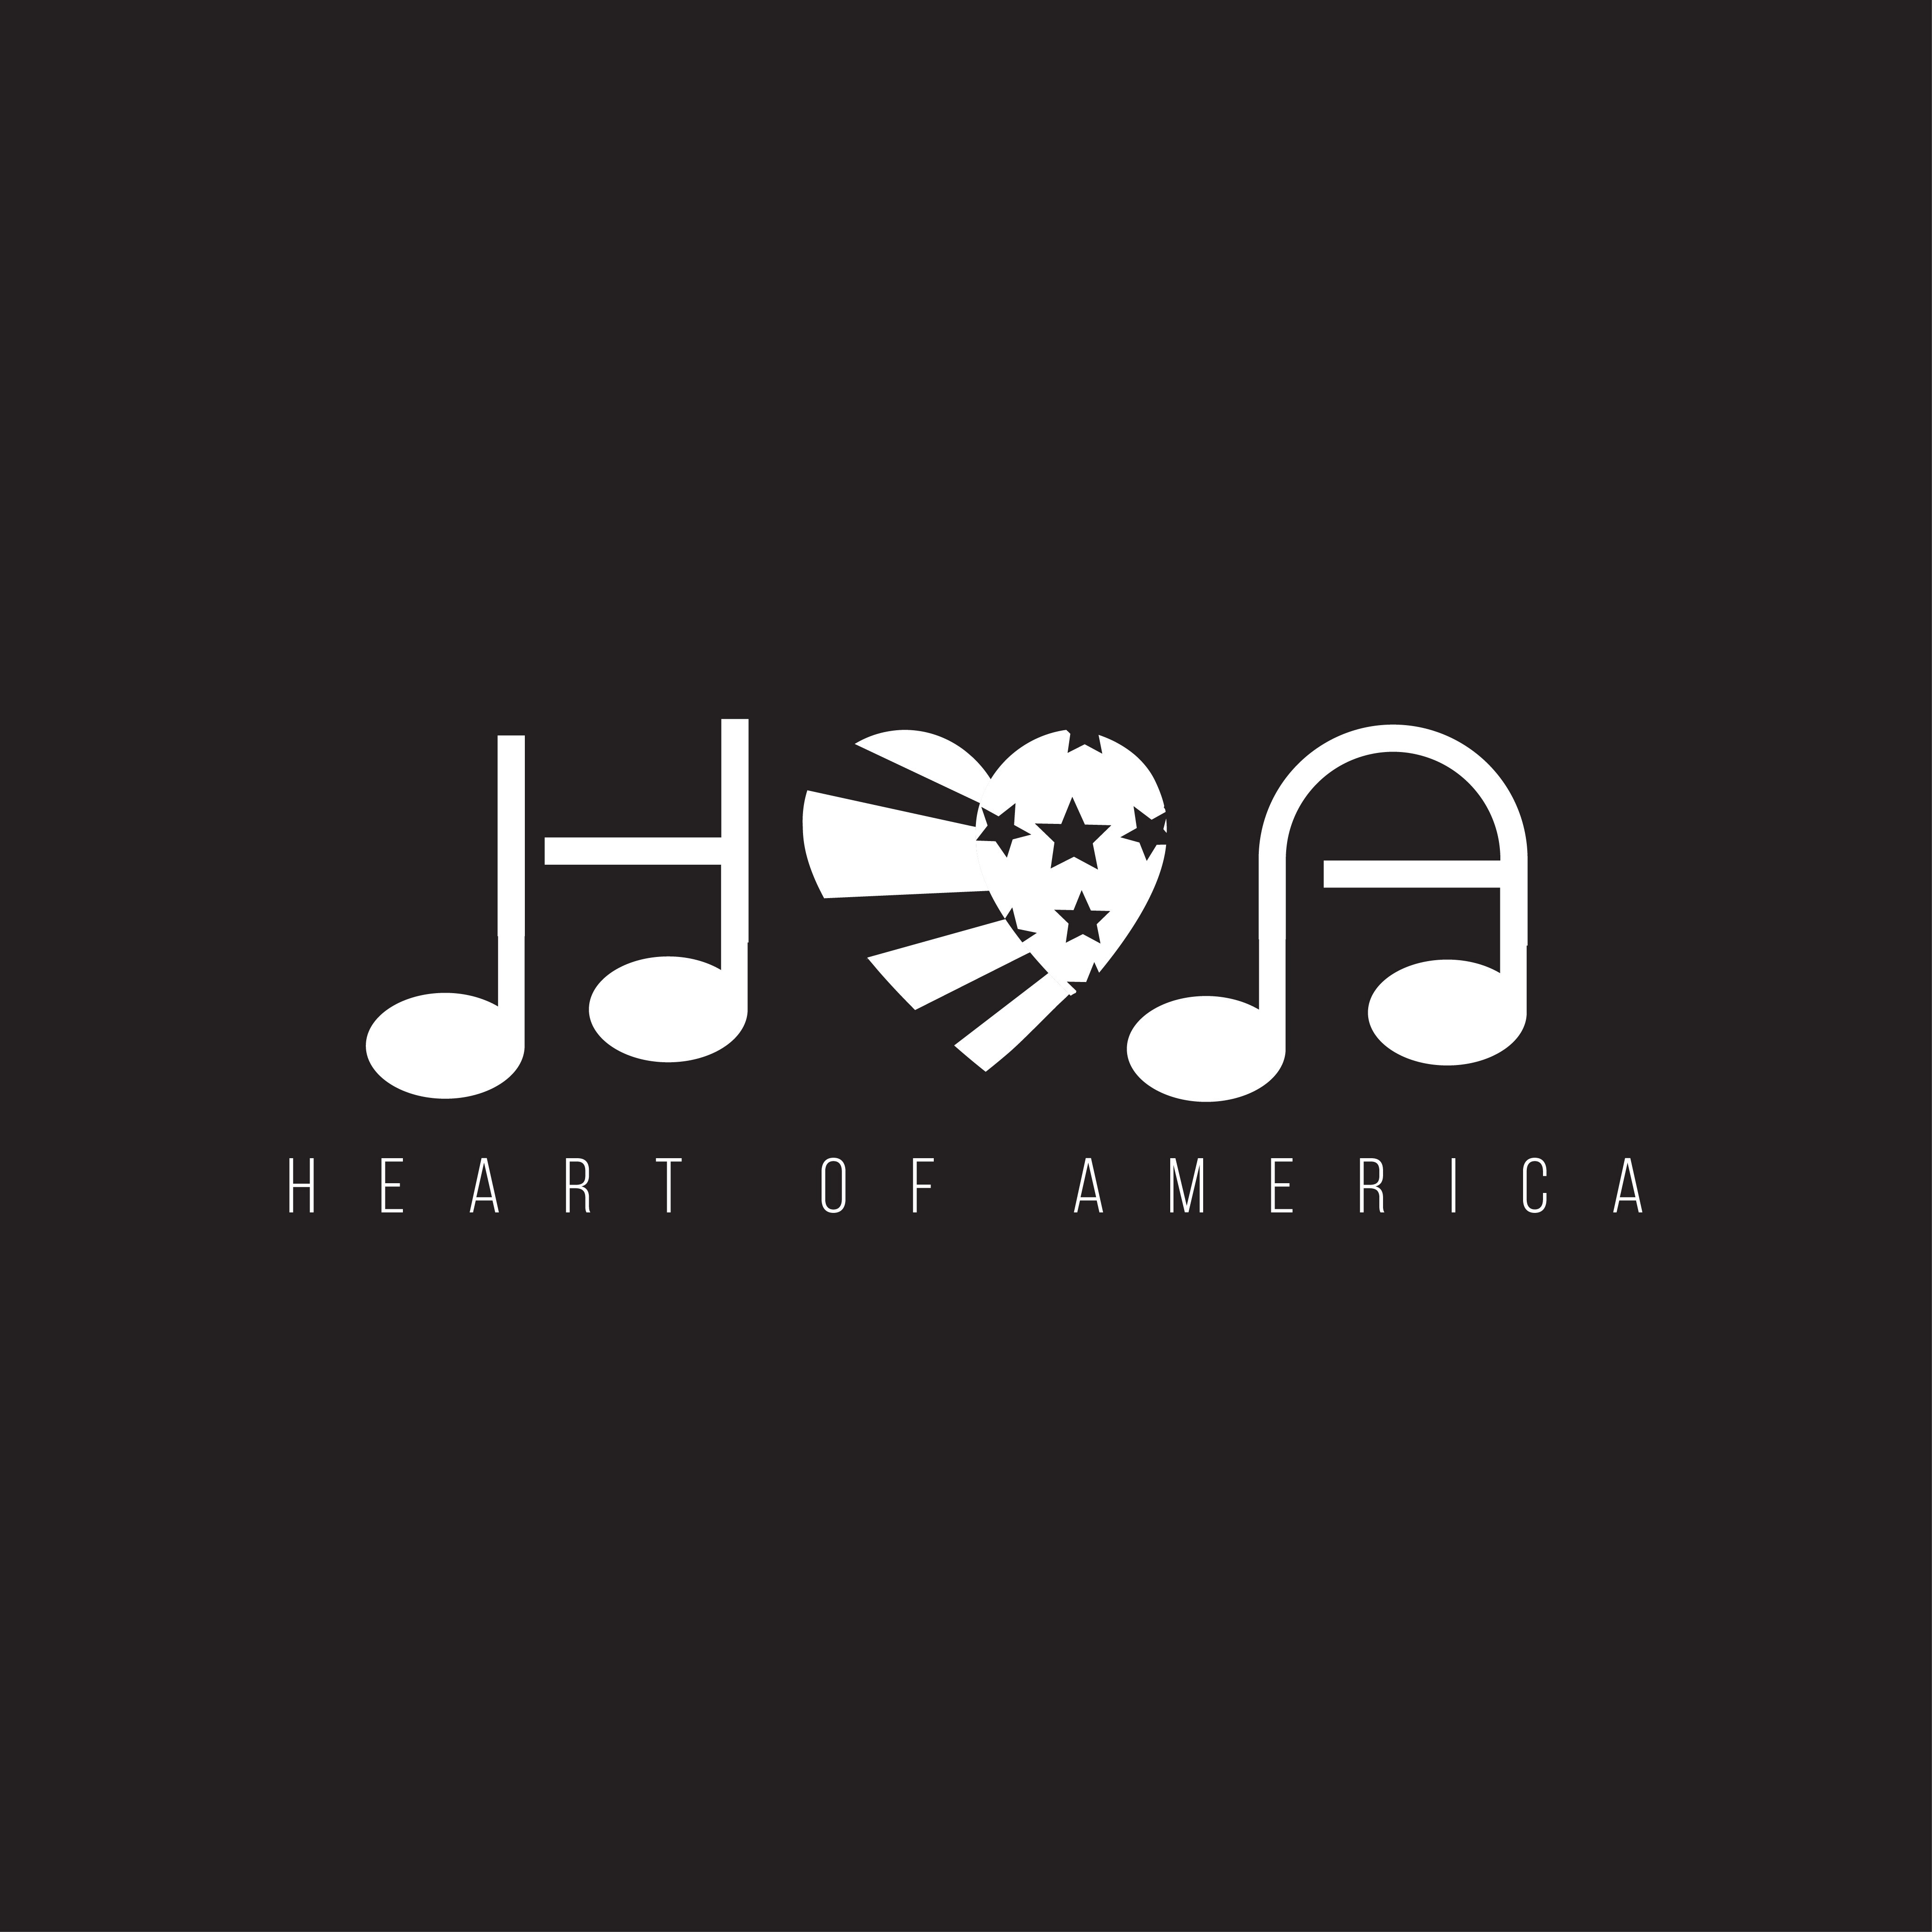 """Except the challenge to create a sleek/cool """"Heart of America"""" logo"""